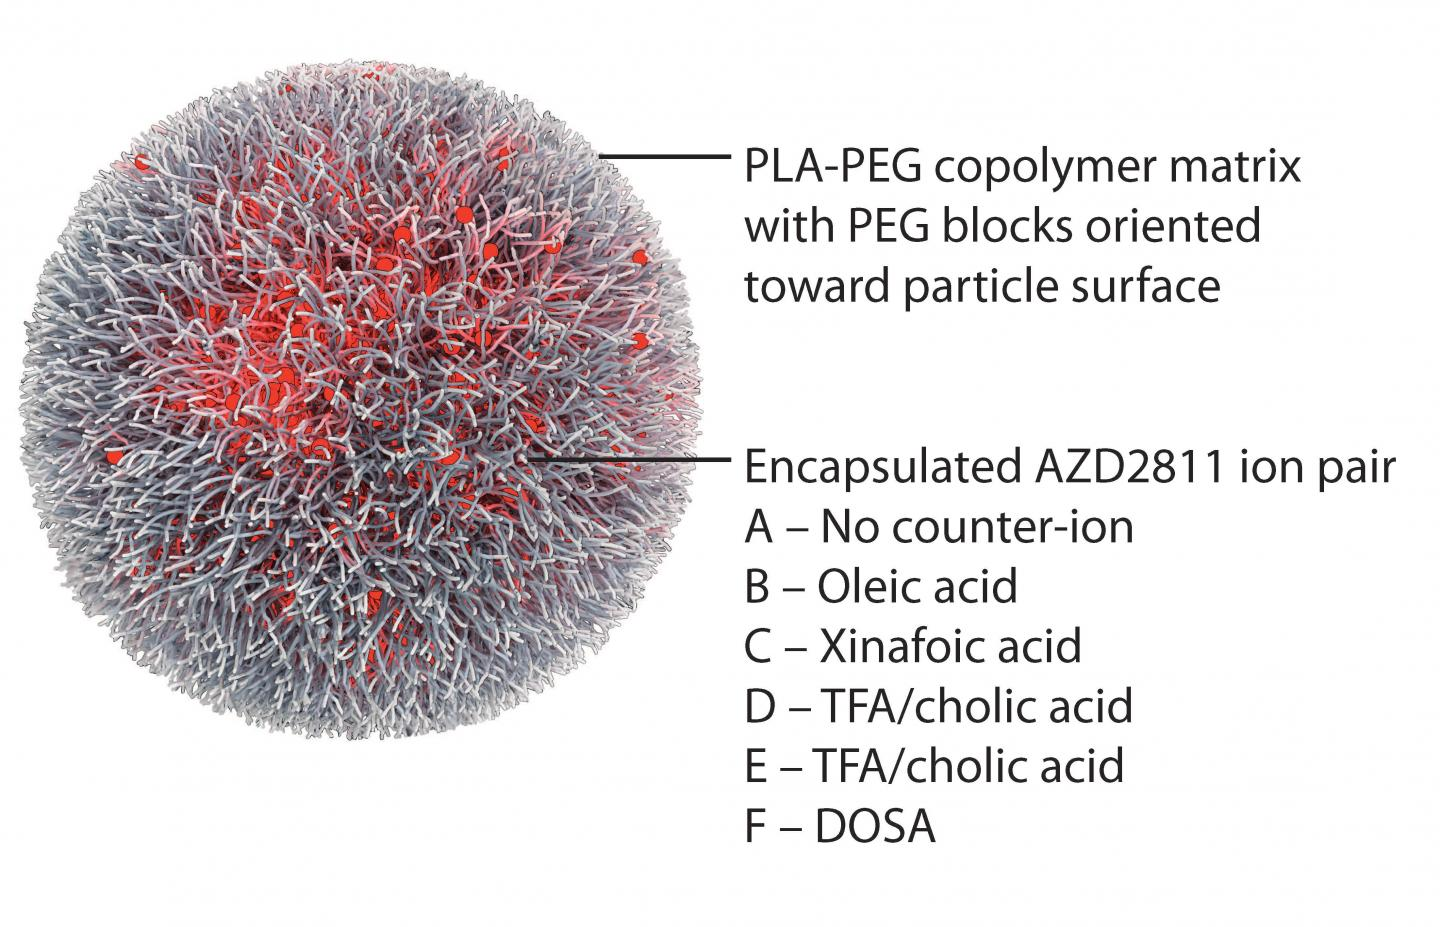 Nanoparticle Reduces Targeted Cancer Drug's Toxicity